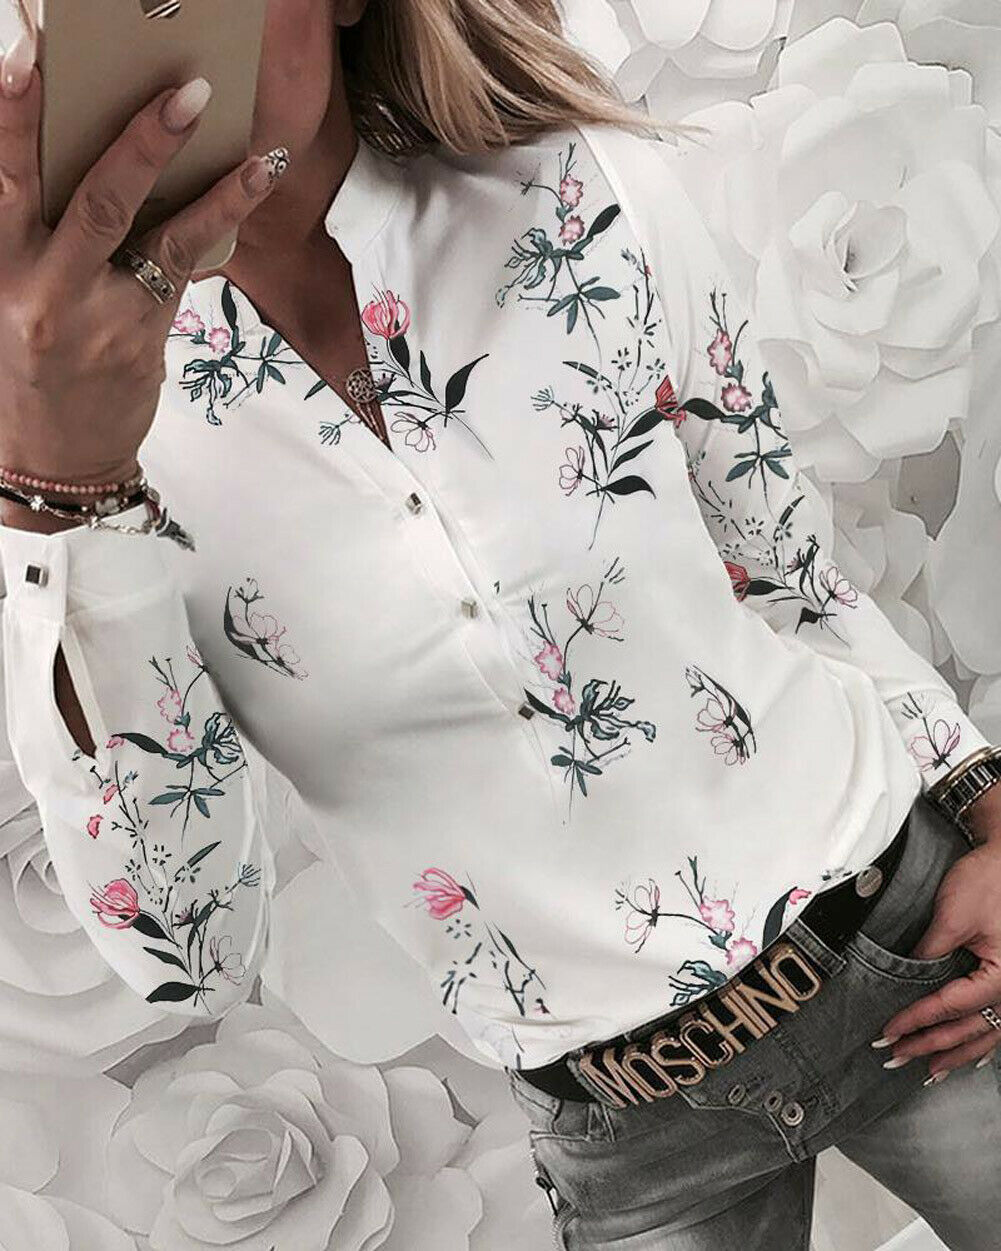 Women's Blouses 2019 With Floral Print Long Sleeve V-neck Blouse Women's Shirts Flower OL Plus Size Shirts For Women